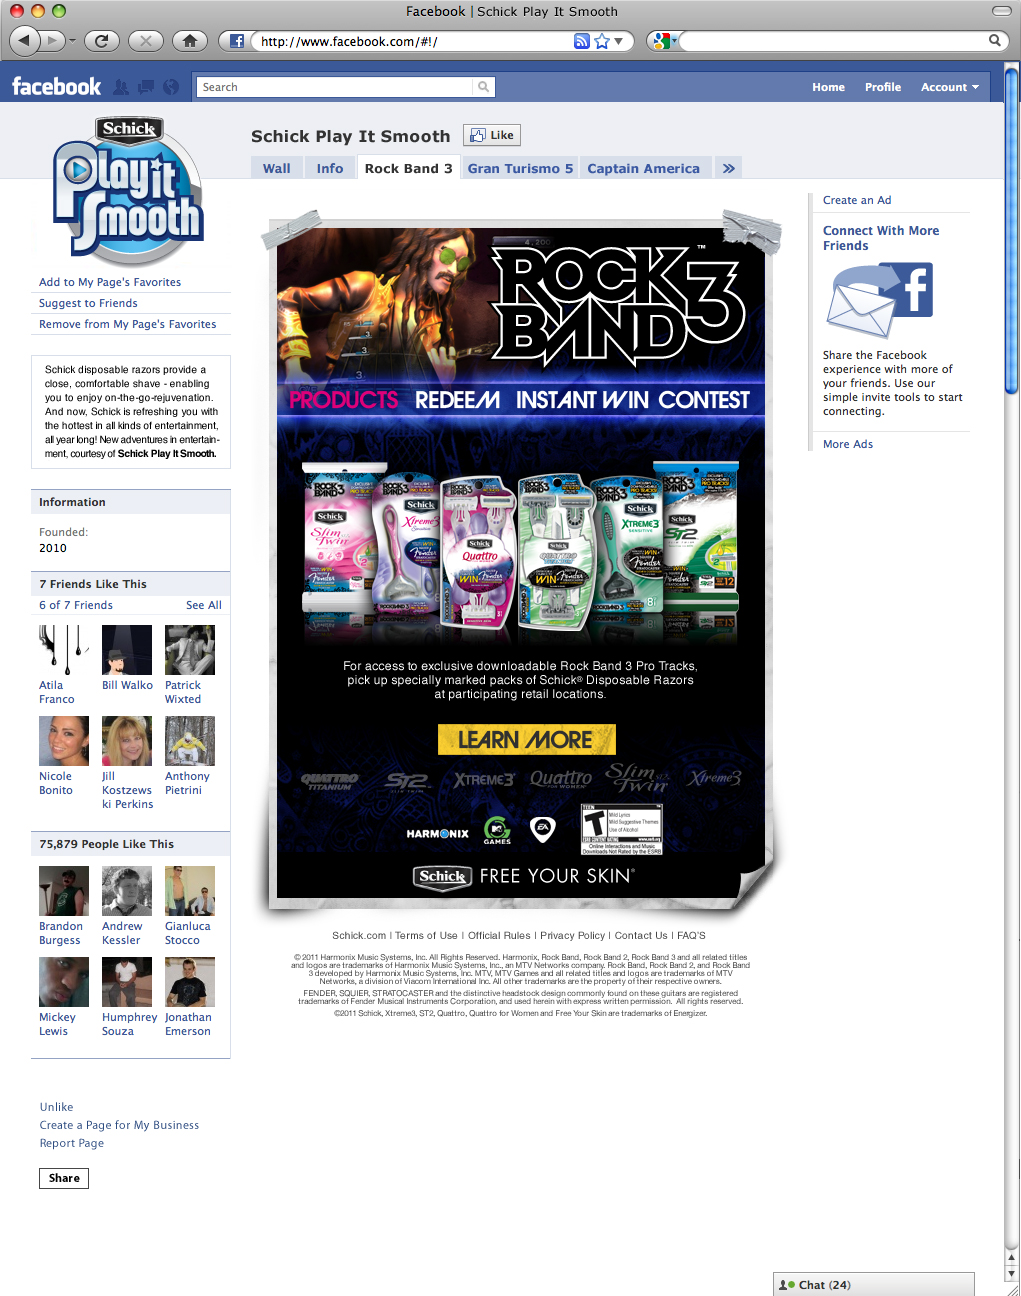 ROCKBAND_FACEBOOK_0000_Products